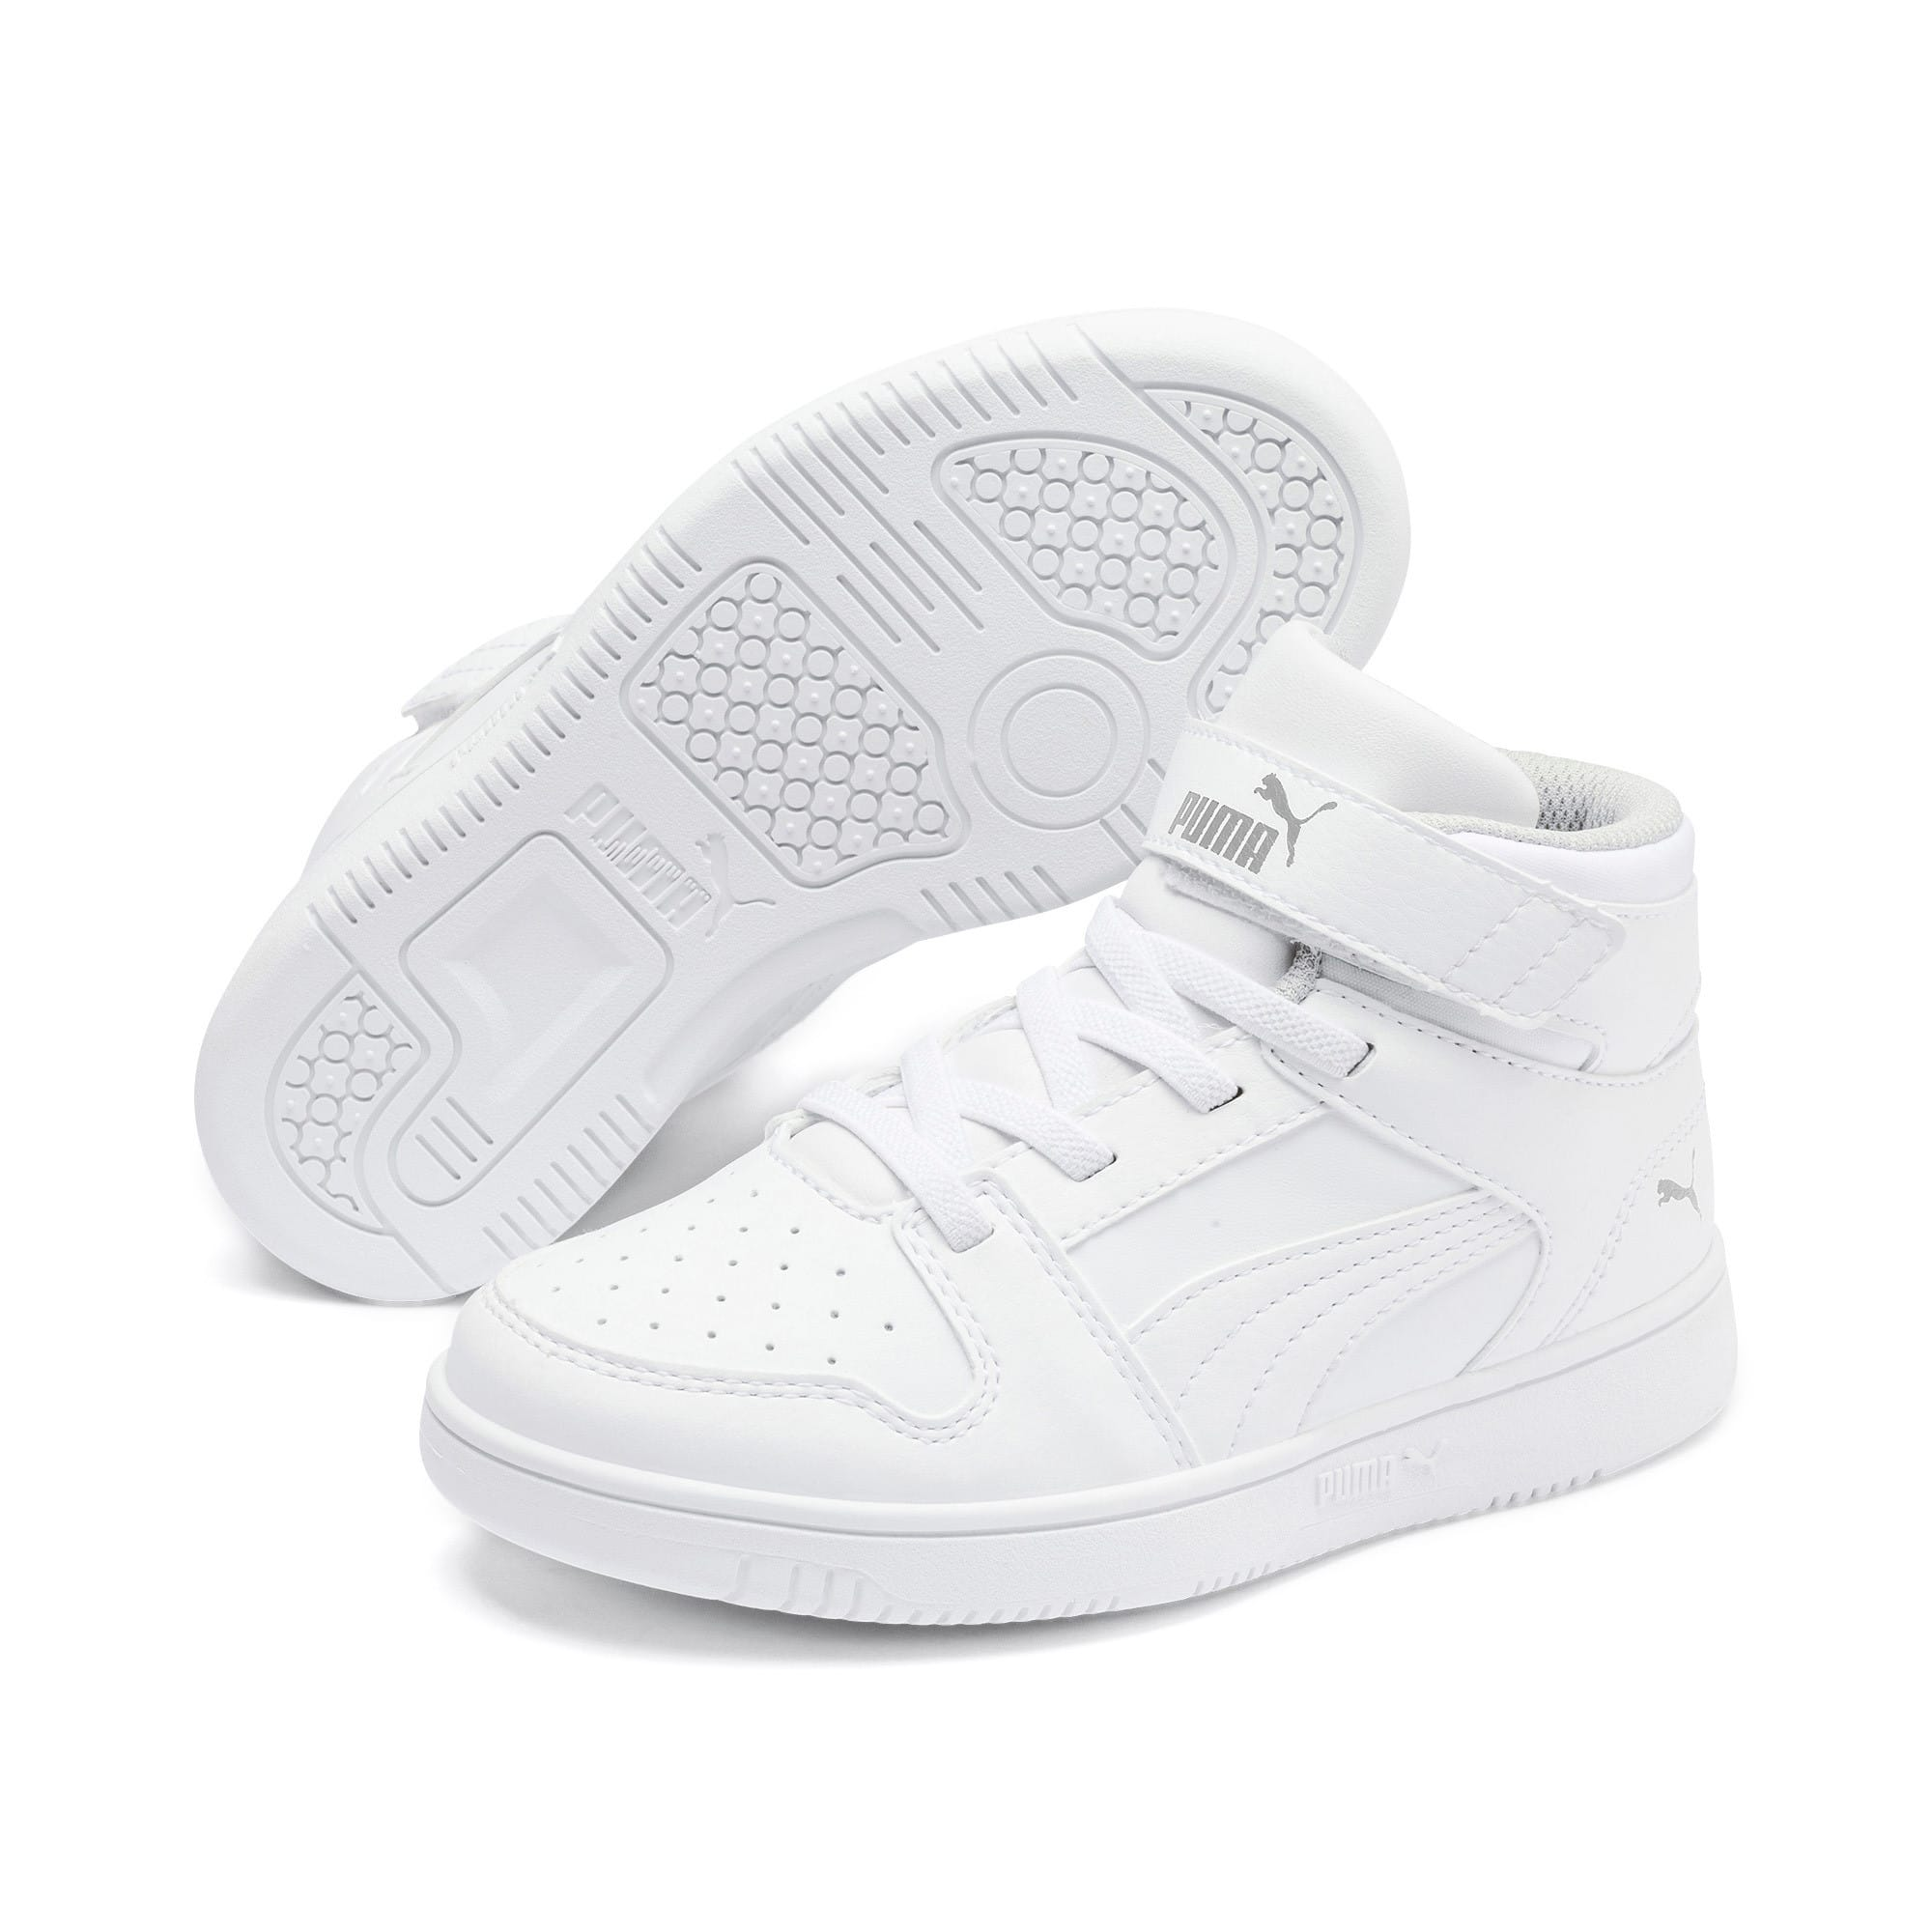 Basket Rebound Lay-Up SL V pour enfant, Puma White-Gray Violet, large